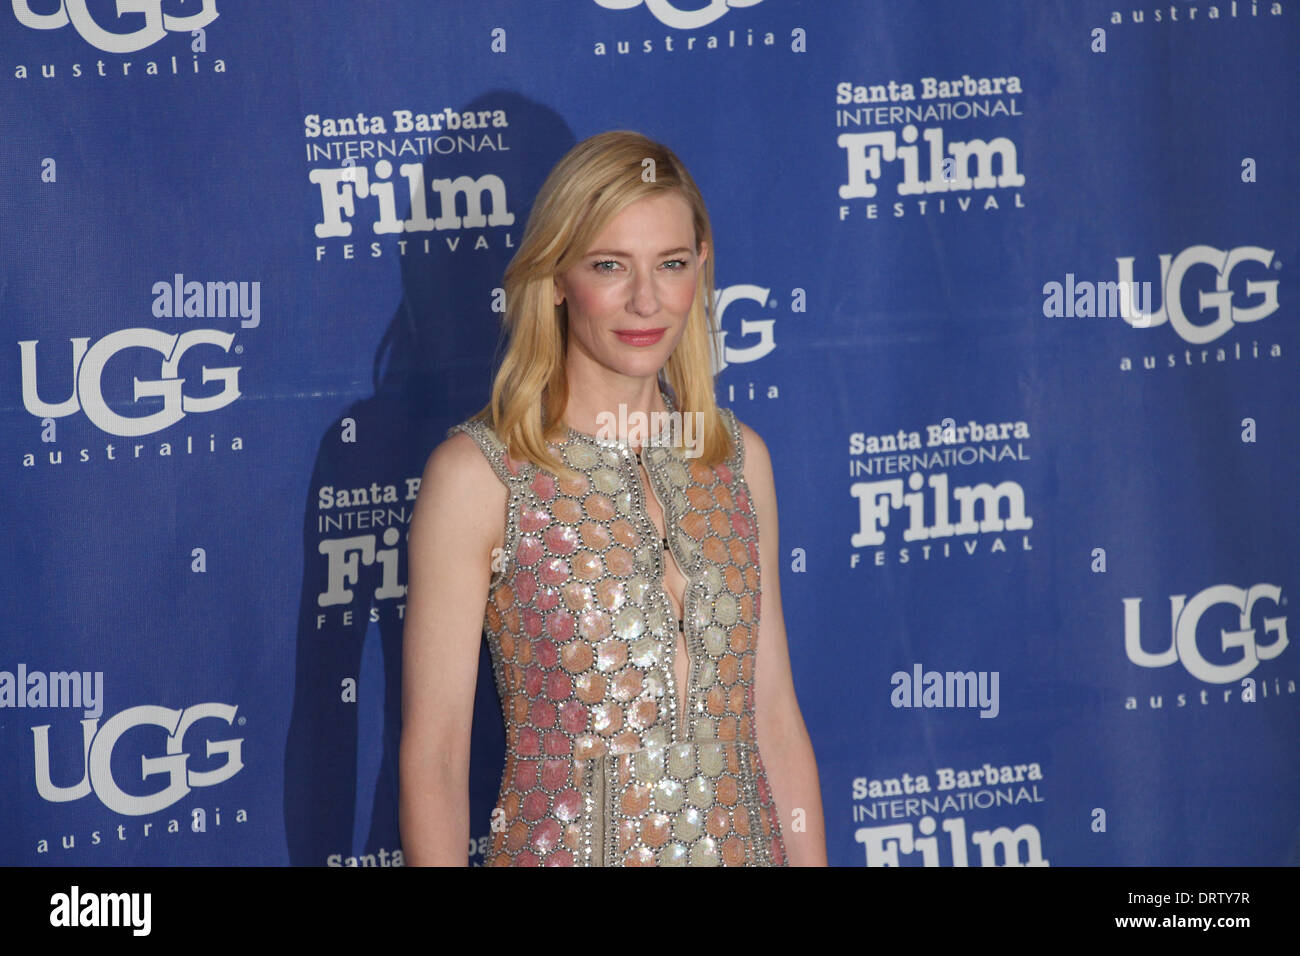 1st Feb, 2014 The Santa Barbara International Film Festival presents  actress Cate Blanchett with the c4e6e05ac974